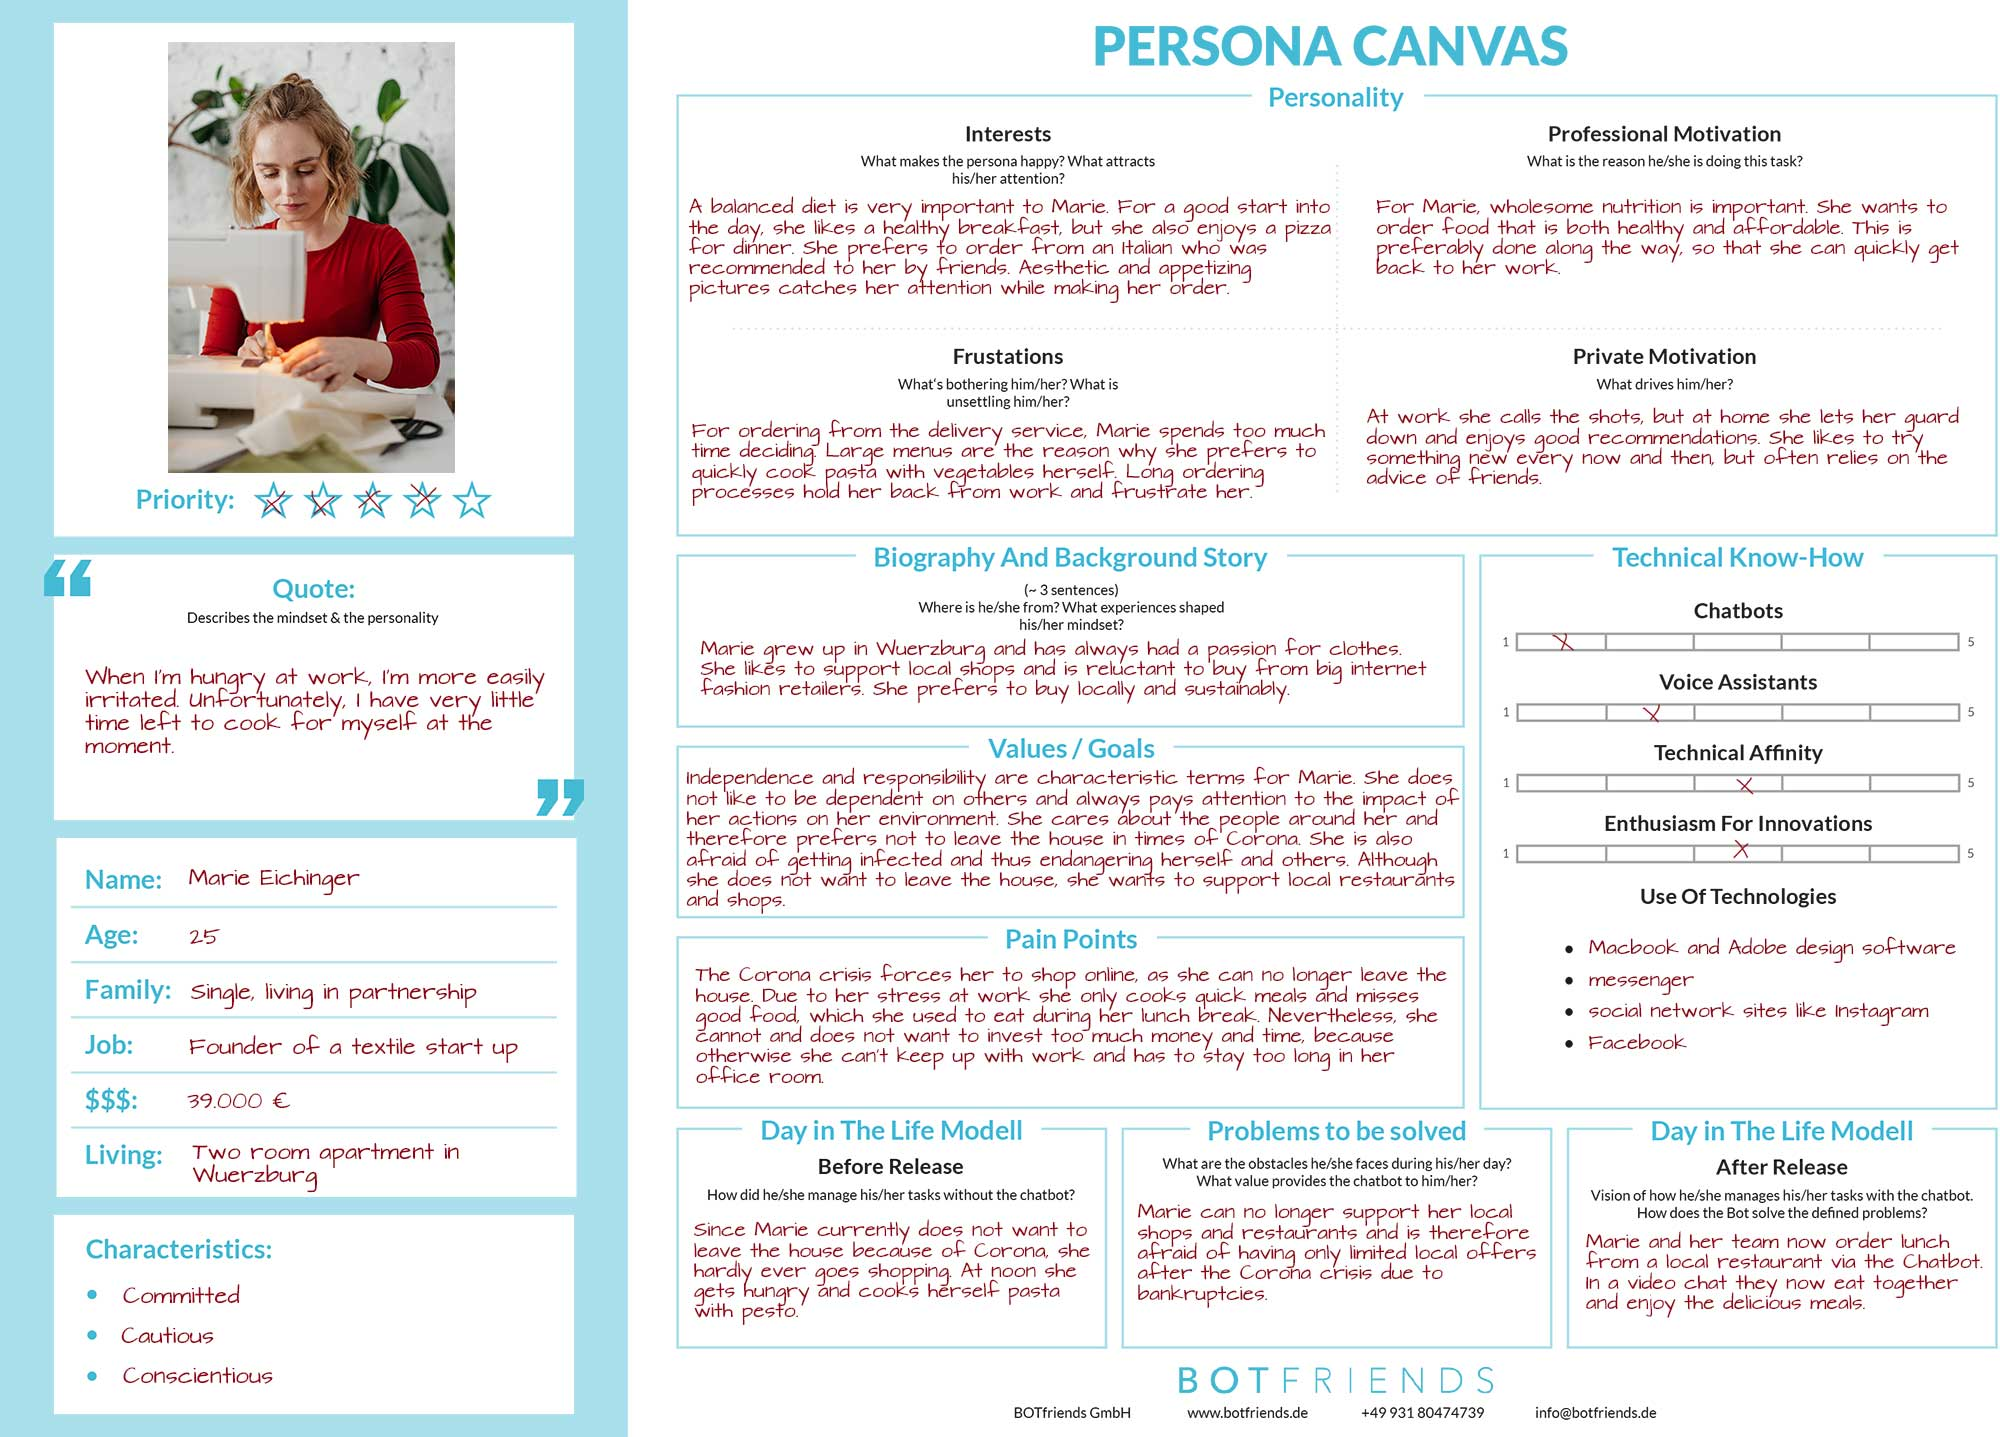 Know your target audience with the BOTfriends Persona Canvas